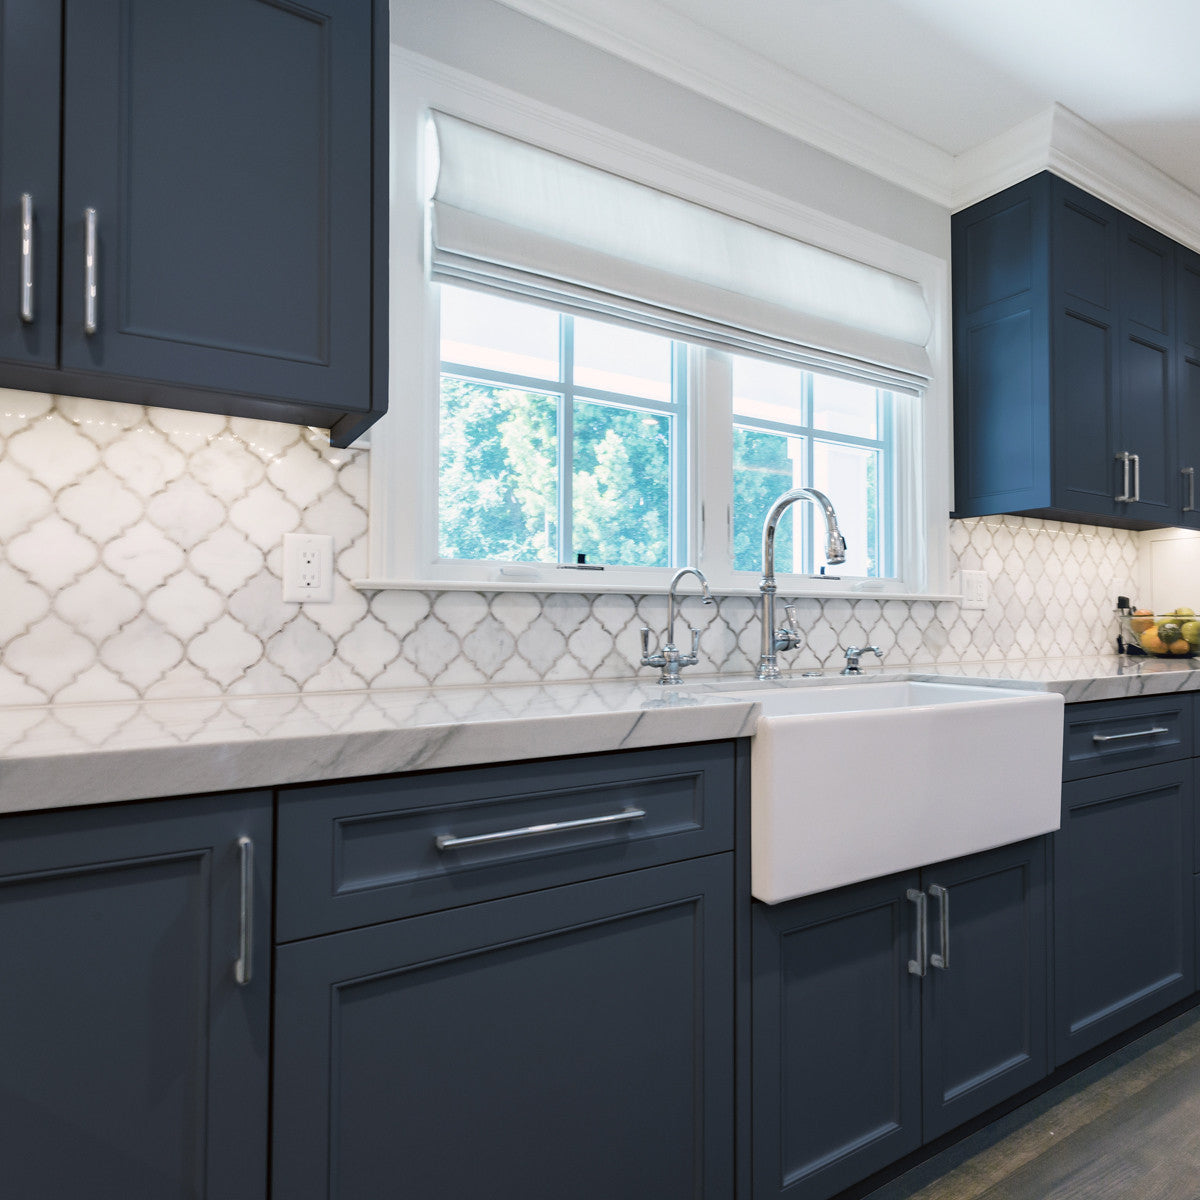 nuvo oxford blue cabinet paint kit giani inc rh gianigranite com kitchen cabinet paint kit reviews nuvo kitchen cabinet paint kit